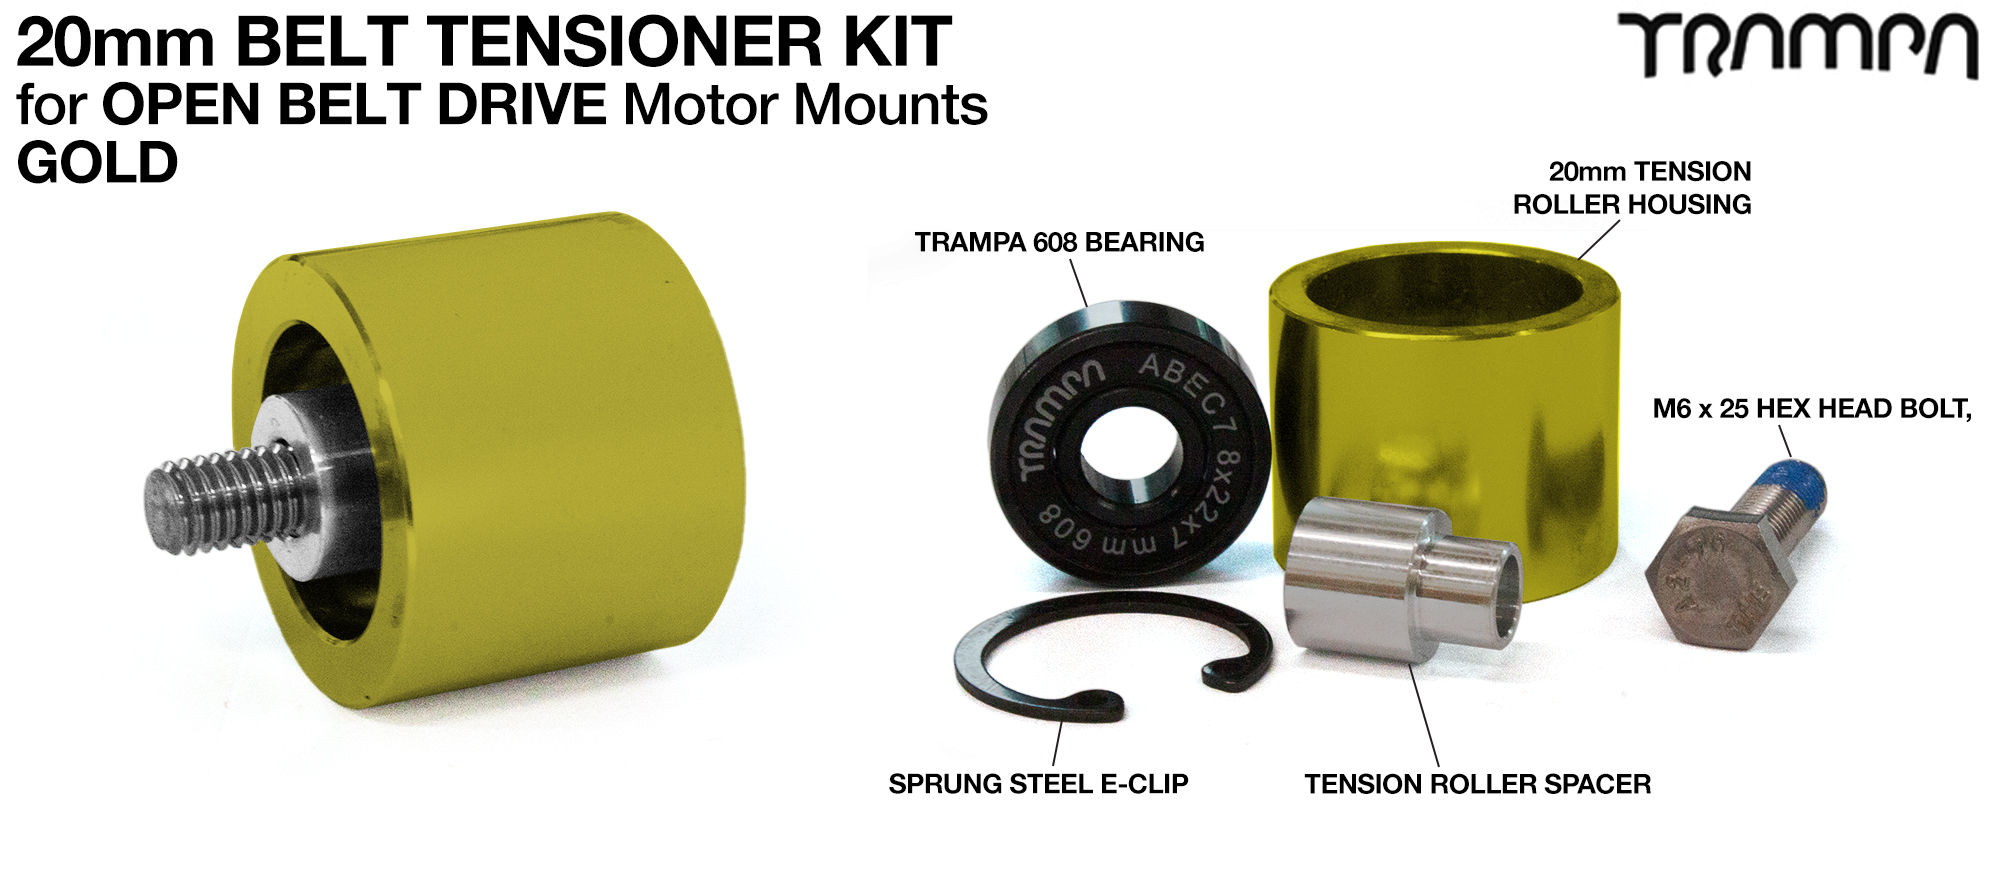 GOLD OBD 20mm Belt Tensioner